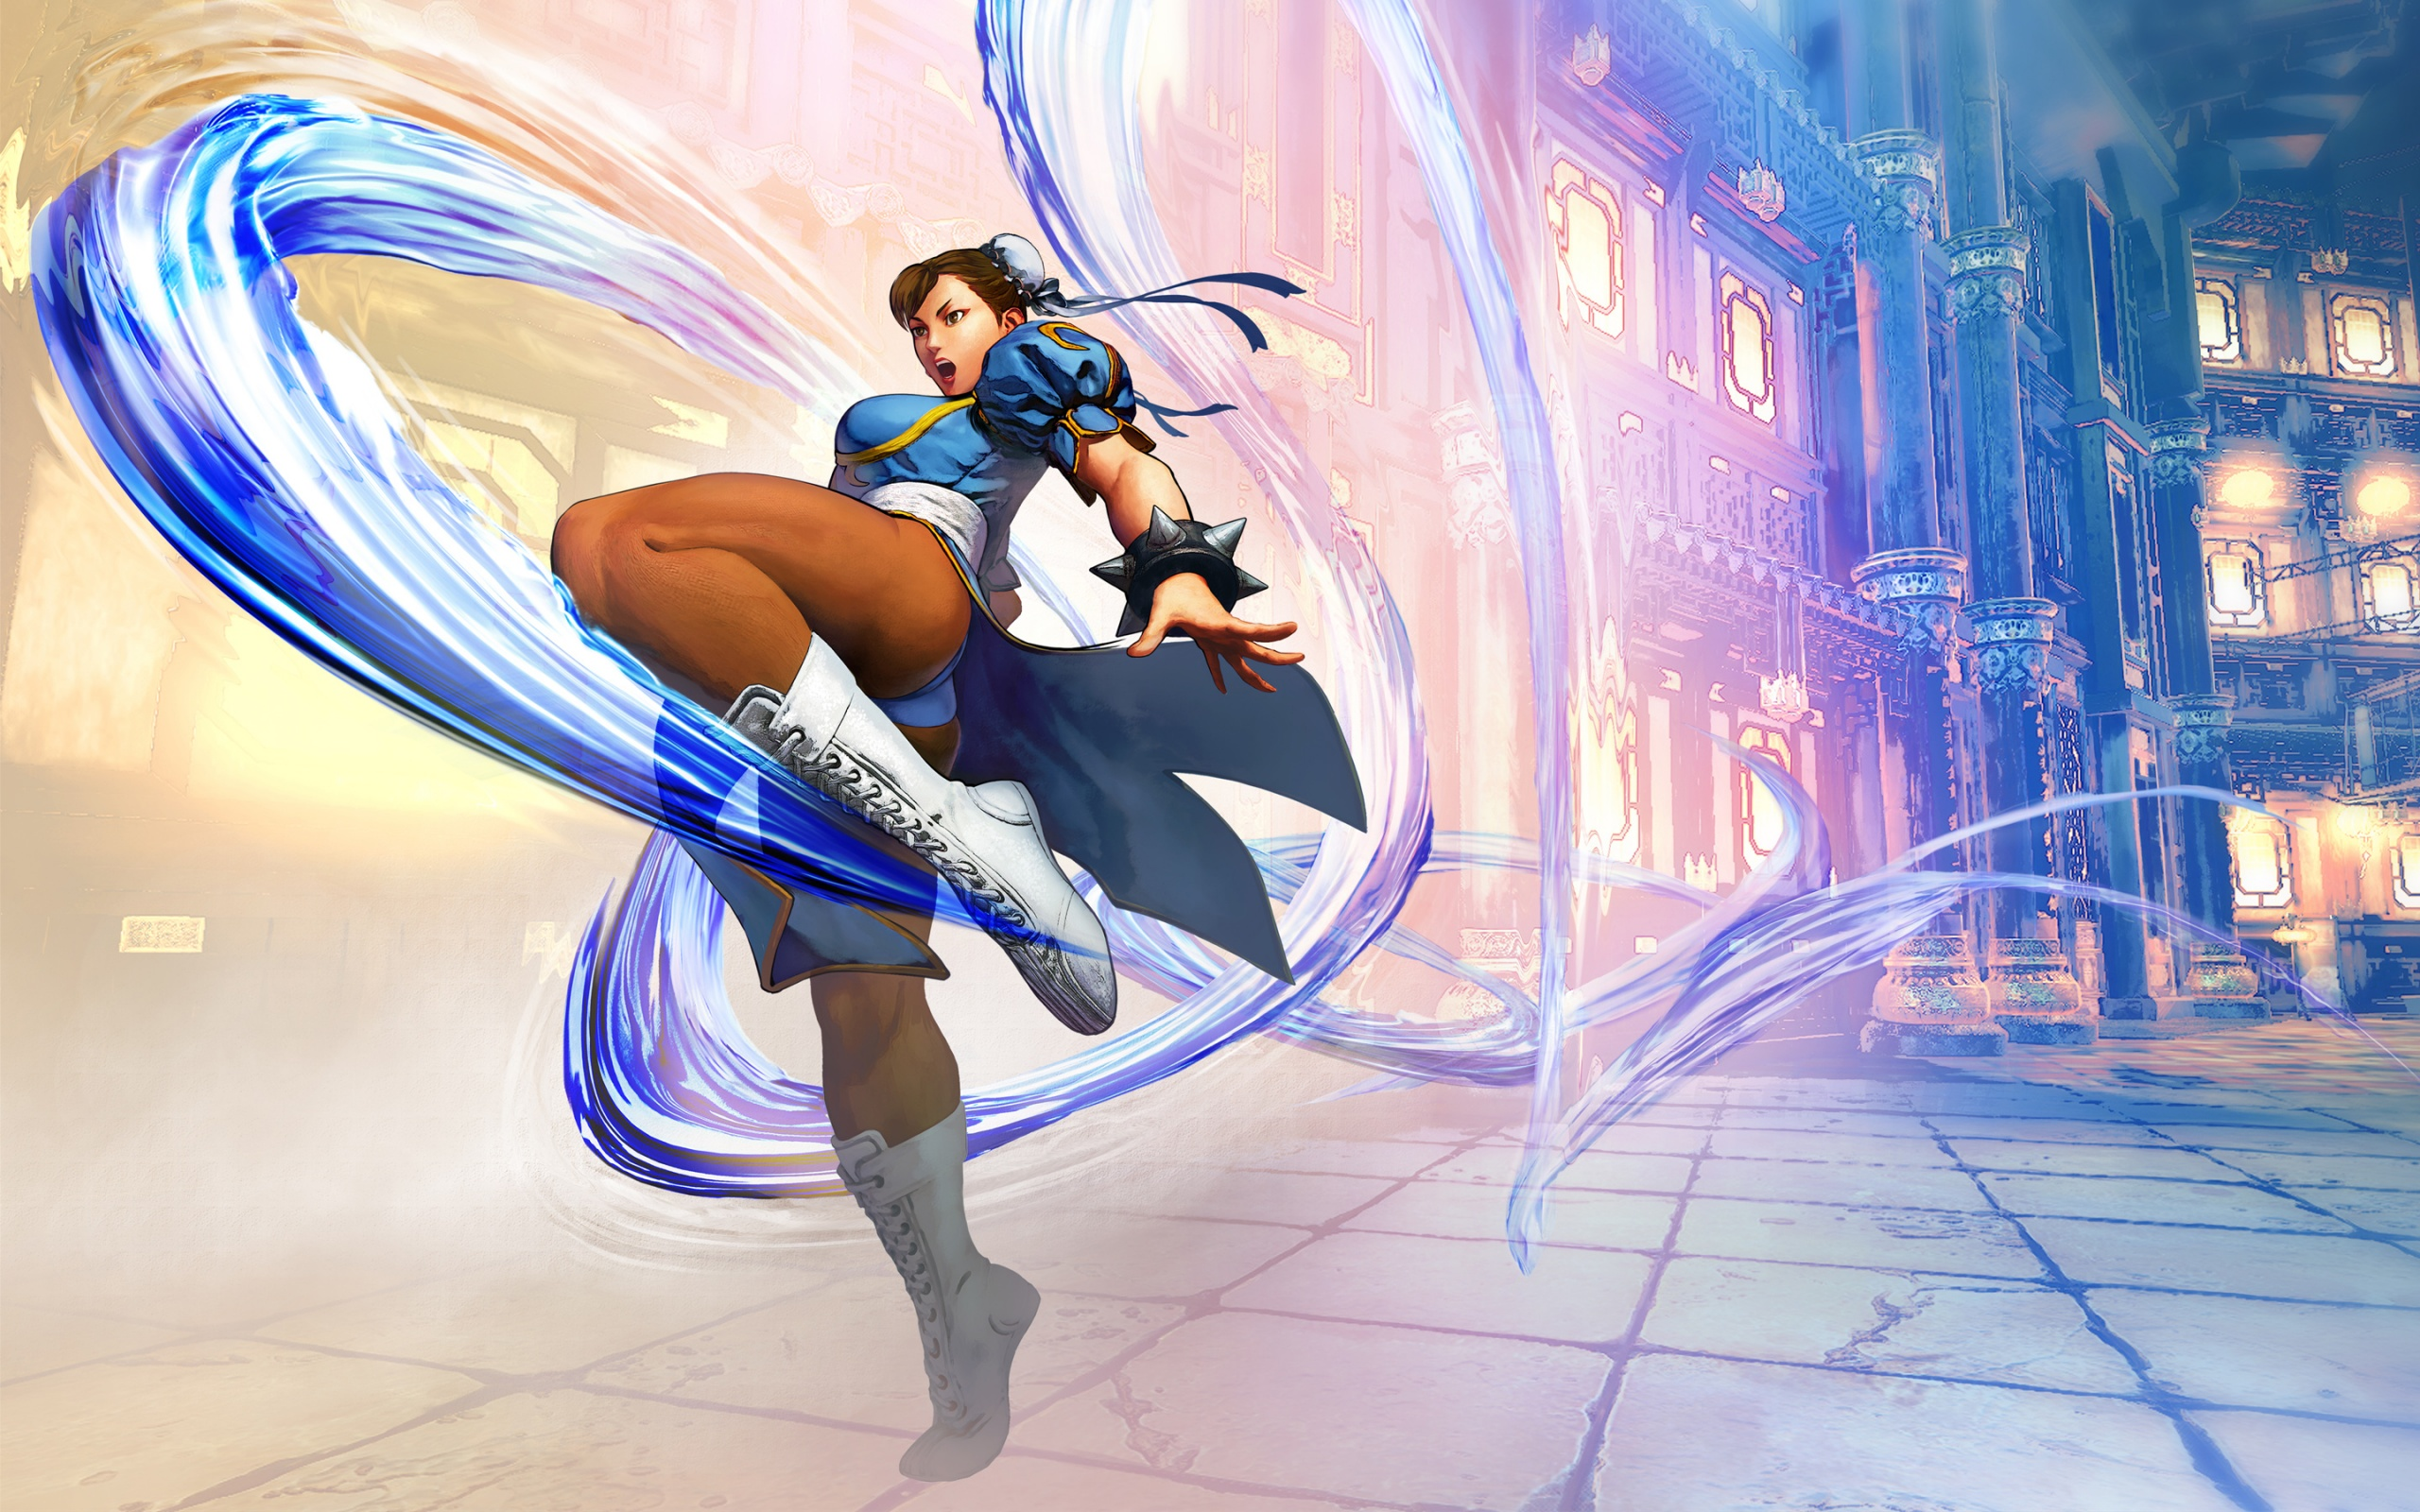 Animated Nature Wallpapers Free Download Chun Li Street Fighter V Wallpapers In Jpg Format For Free